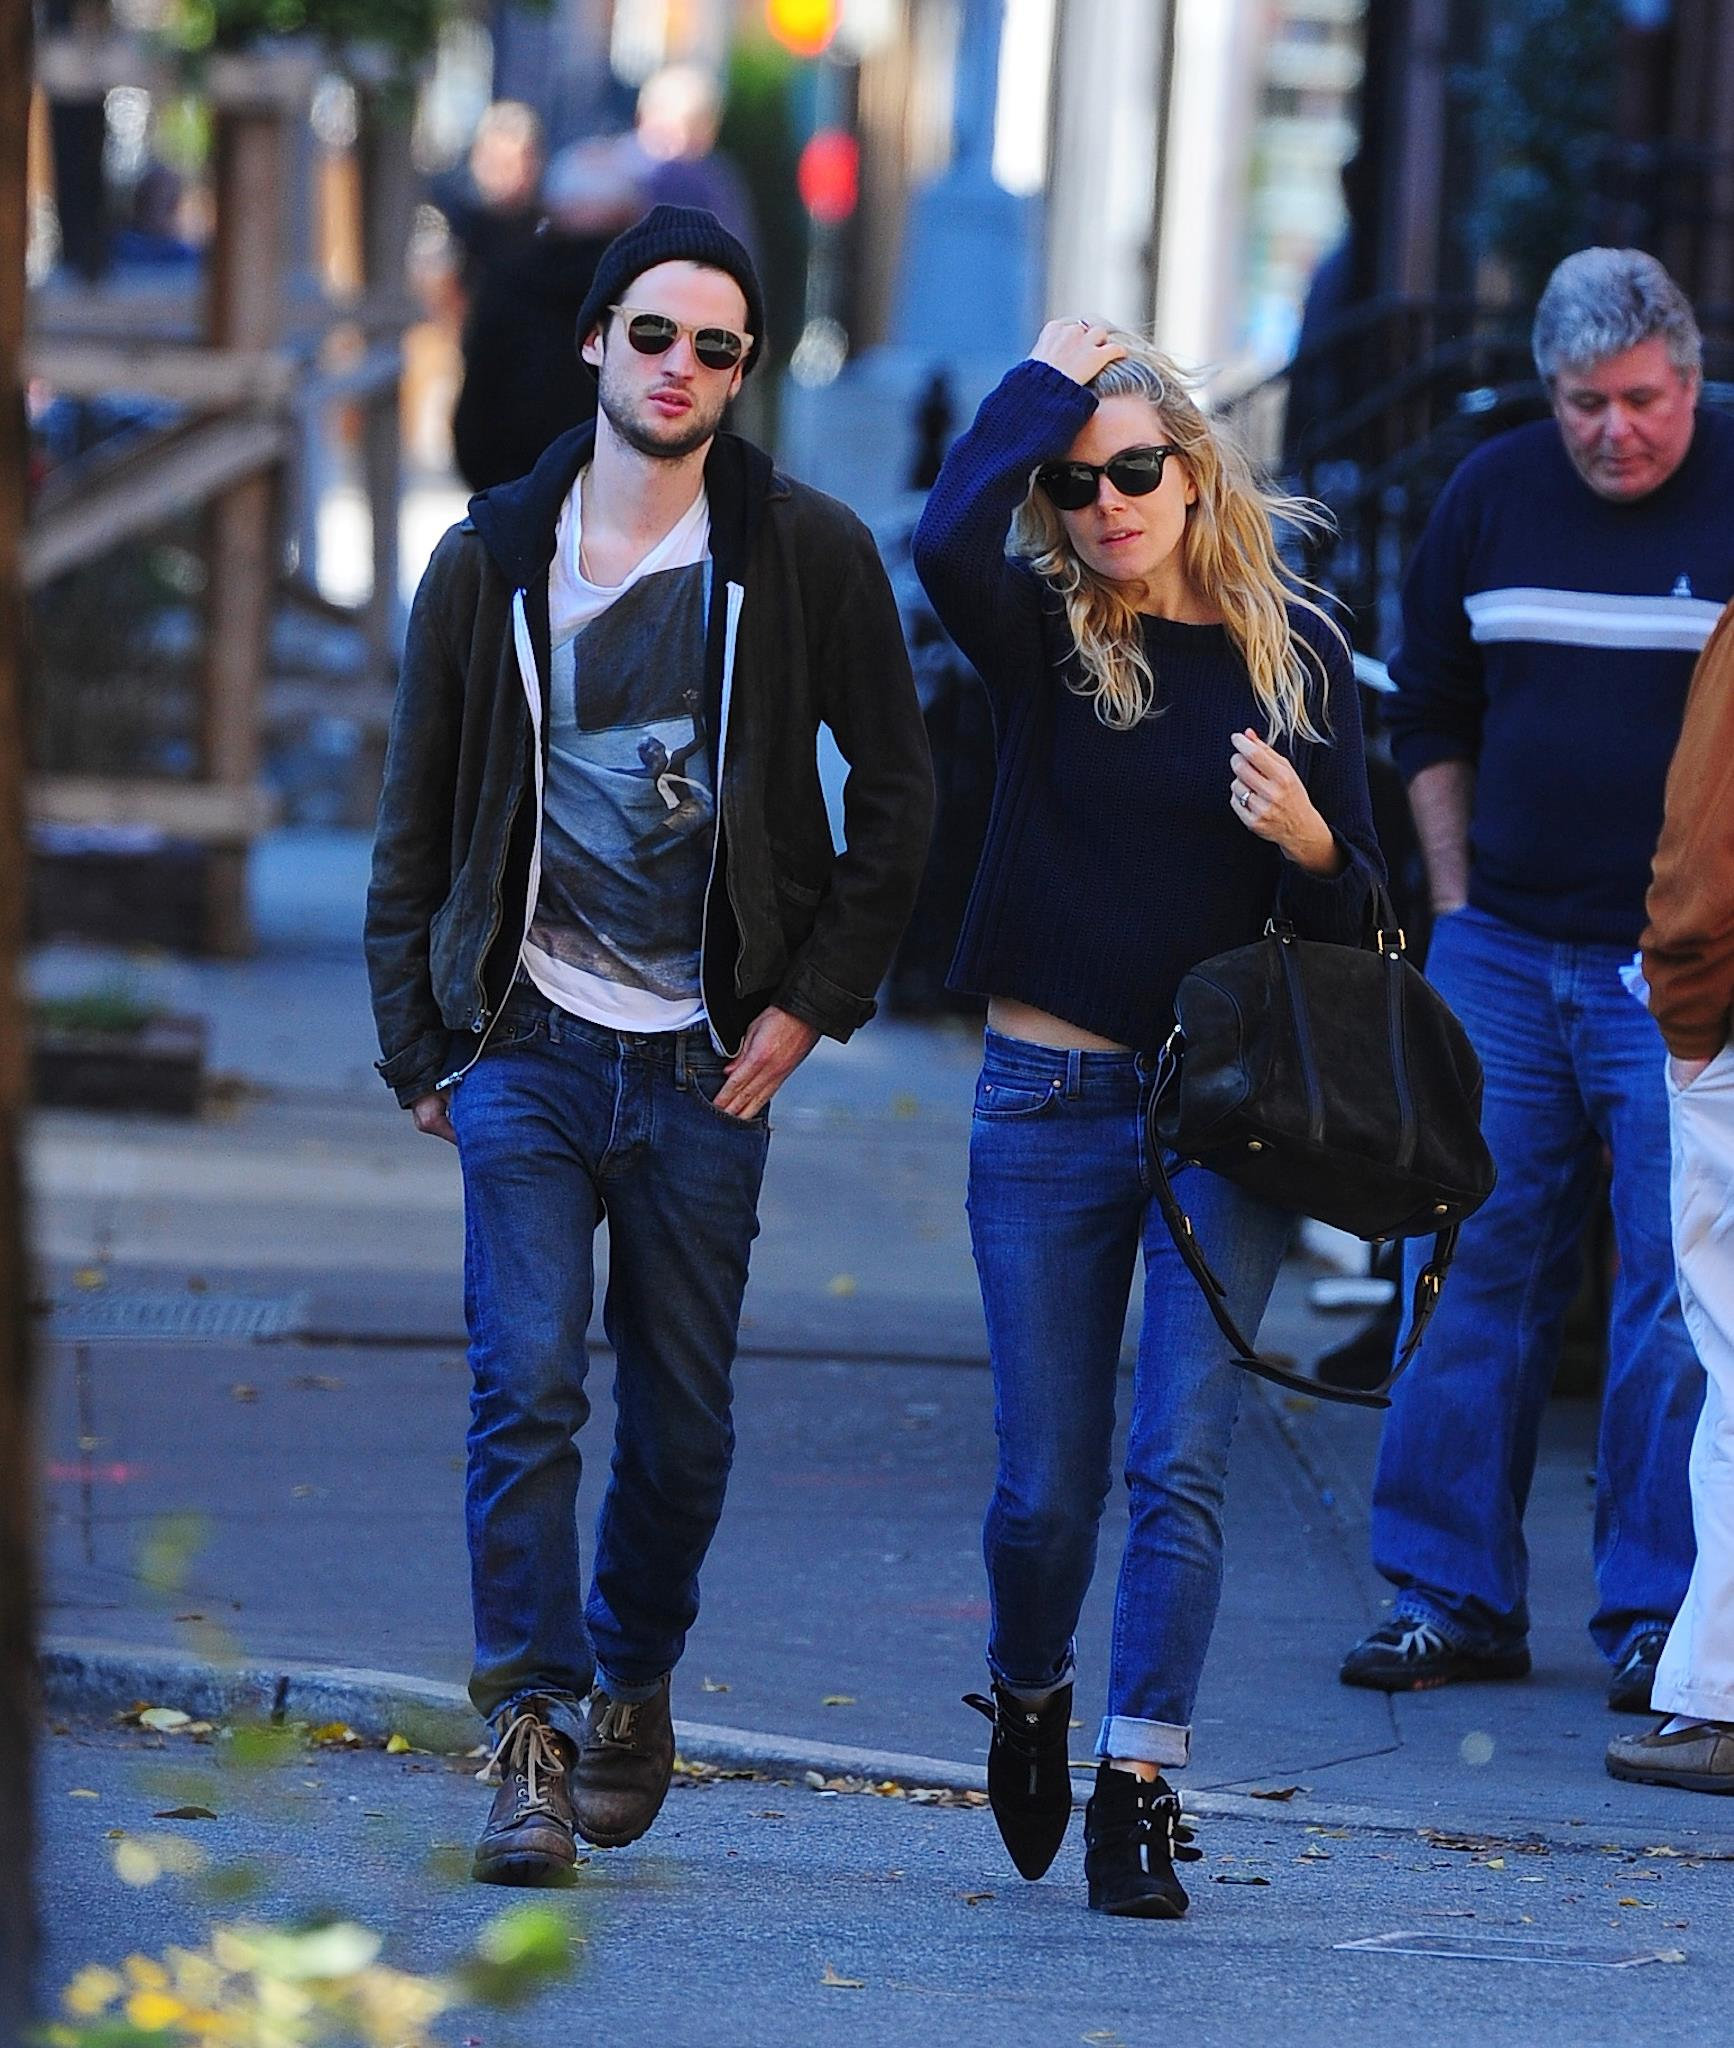 sienna-miller-tom-sturridge-in-mih-and-jean-machine-full-sized